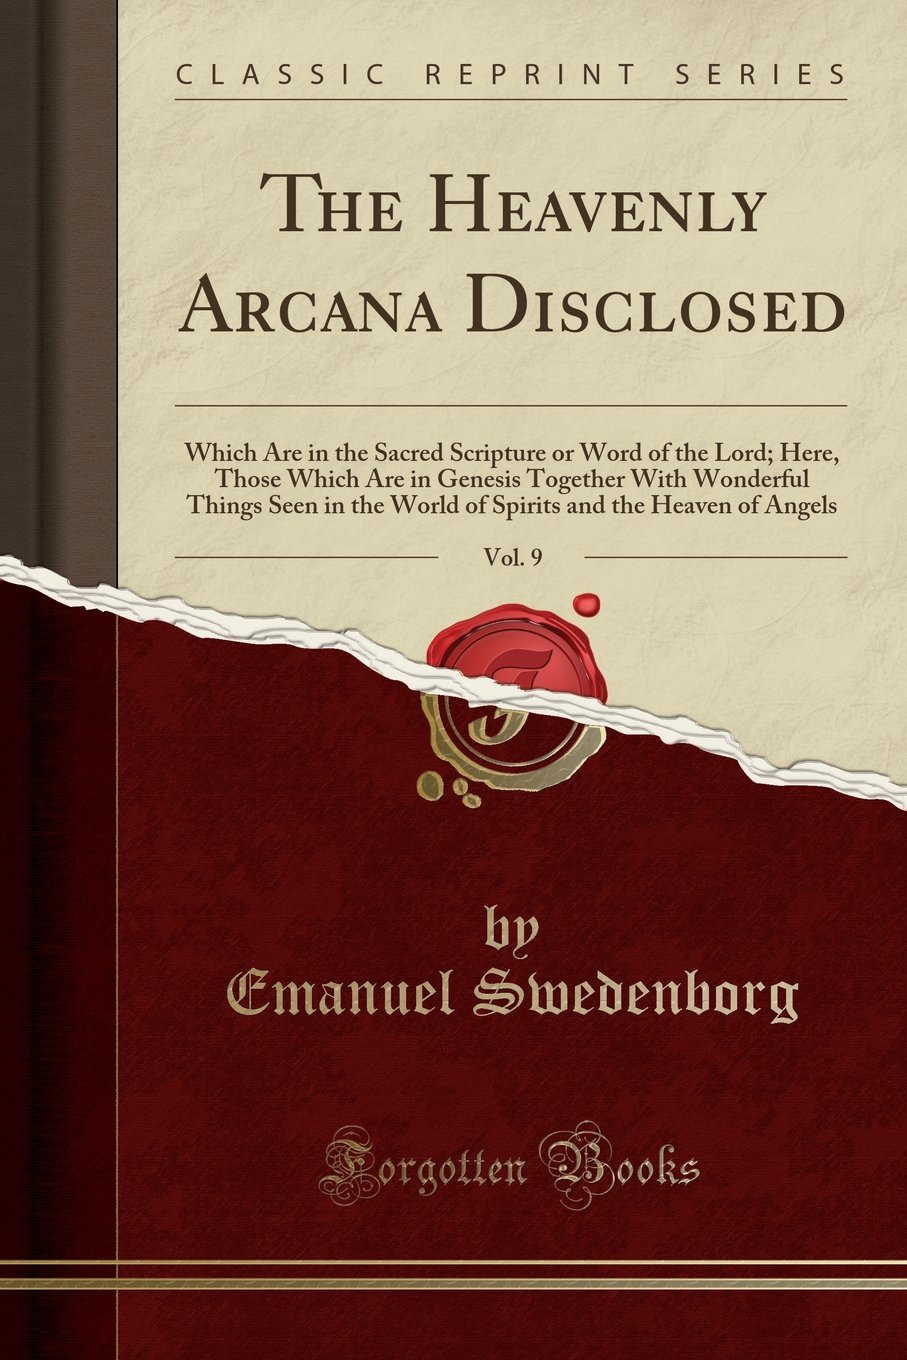 The Heavenly Arcana Disclosed, Vol. 9: Which Are in the Sacred Scripture or Word of the Lord; Here, Those Which Are in Genesis Together With Wonderful ... and the Heaven of Angels (Classic Reprint) pdf epub